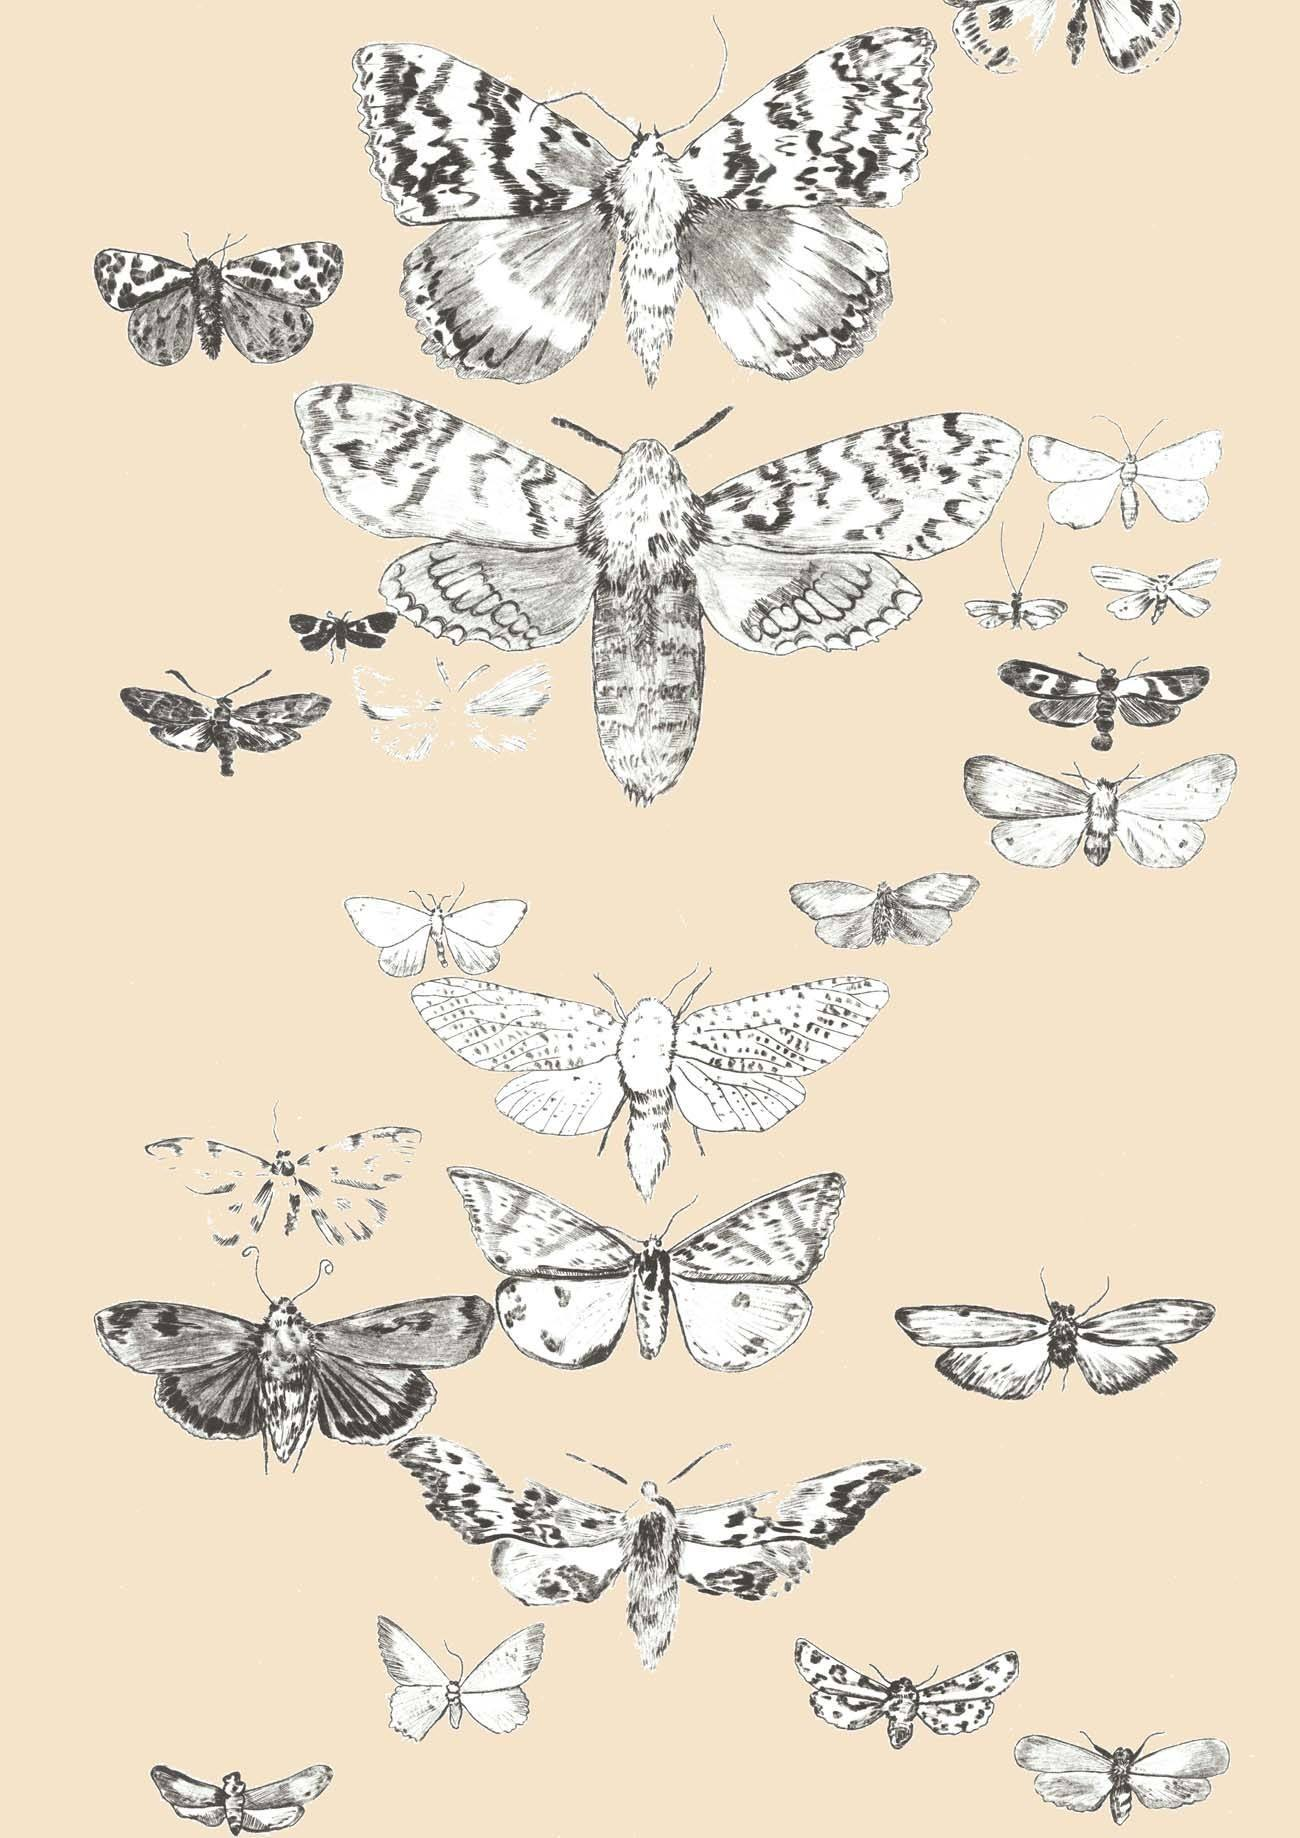 zb british moths drypoint.jpg